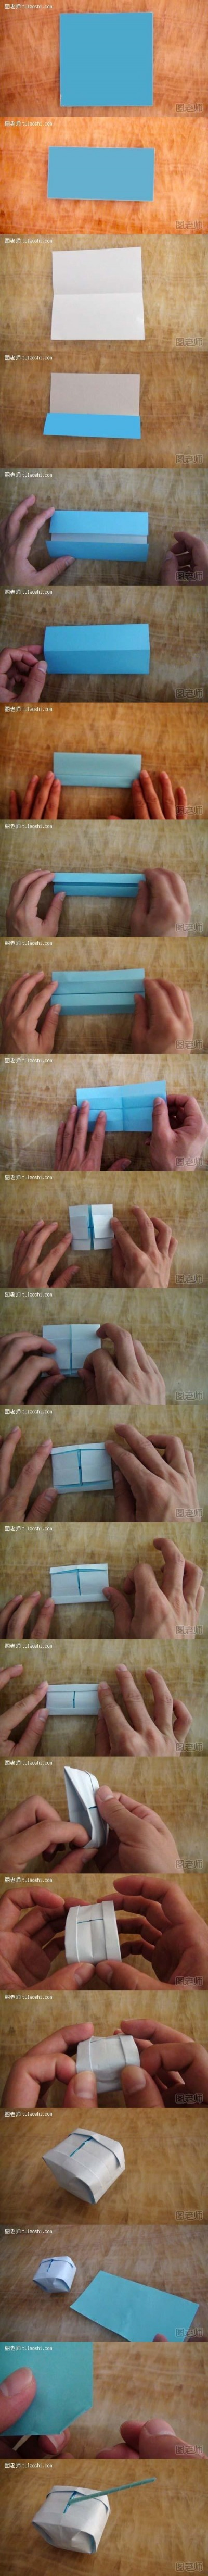 How to make origami tank toy step by step DIY instructions